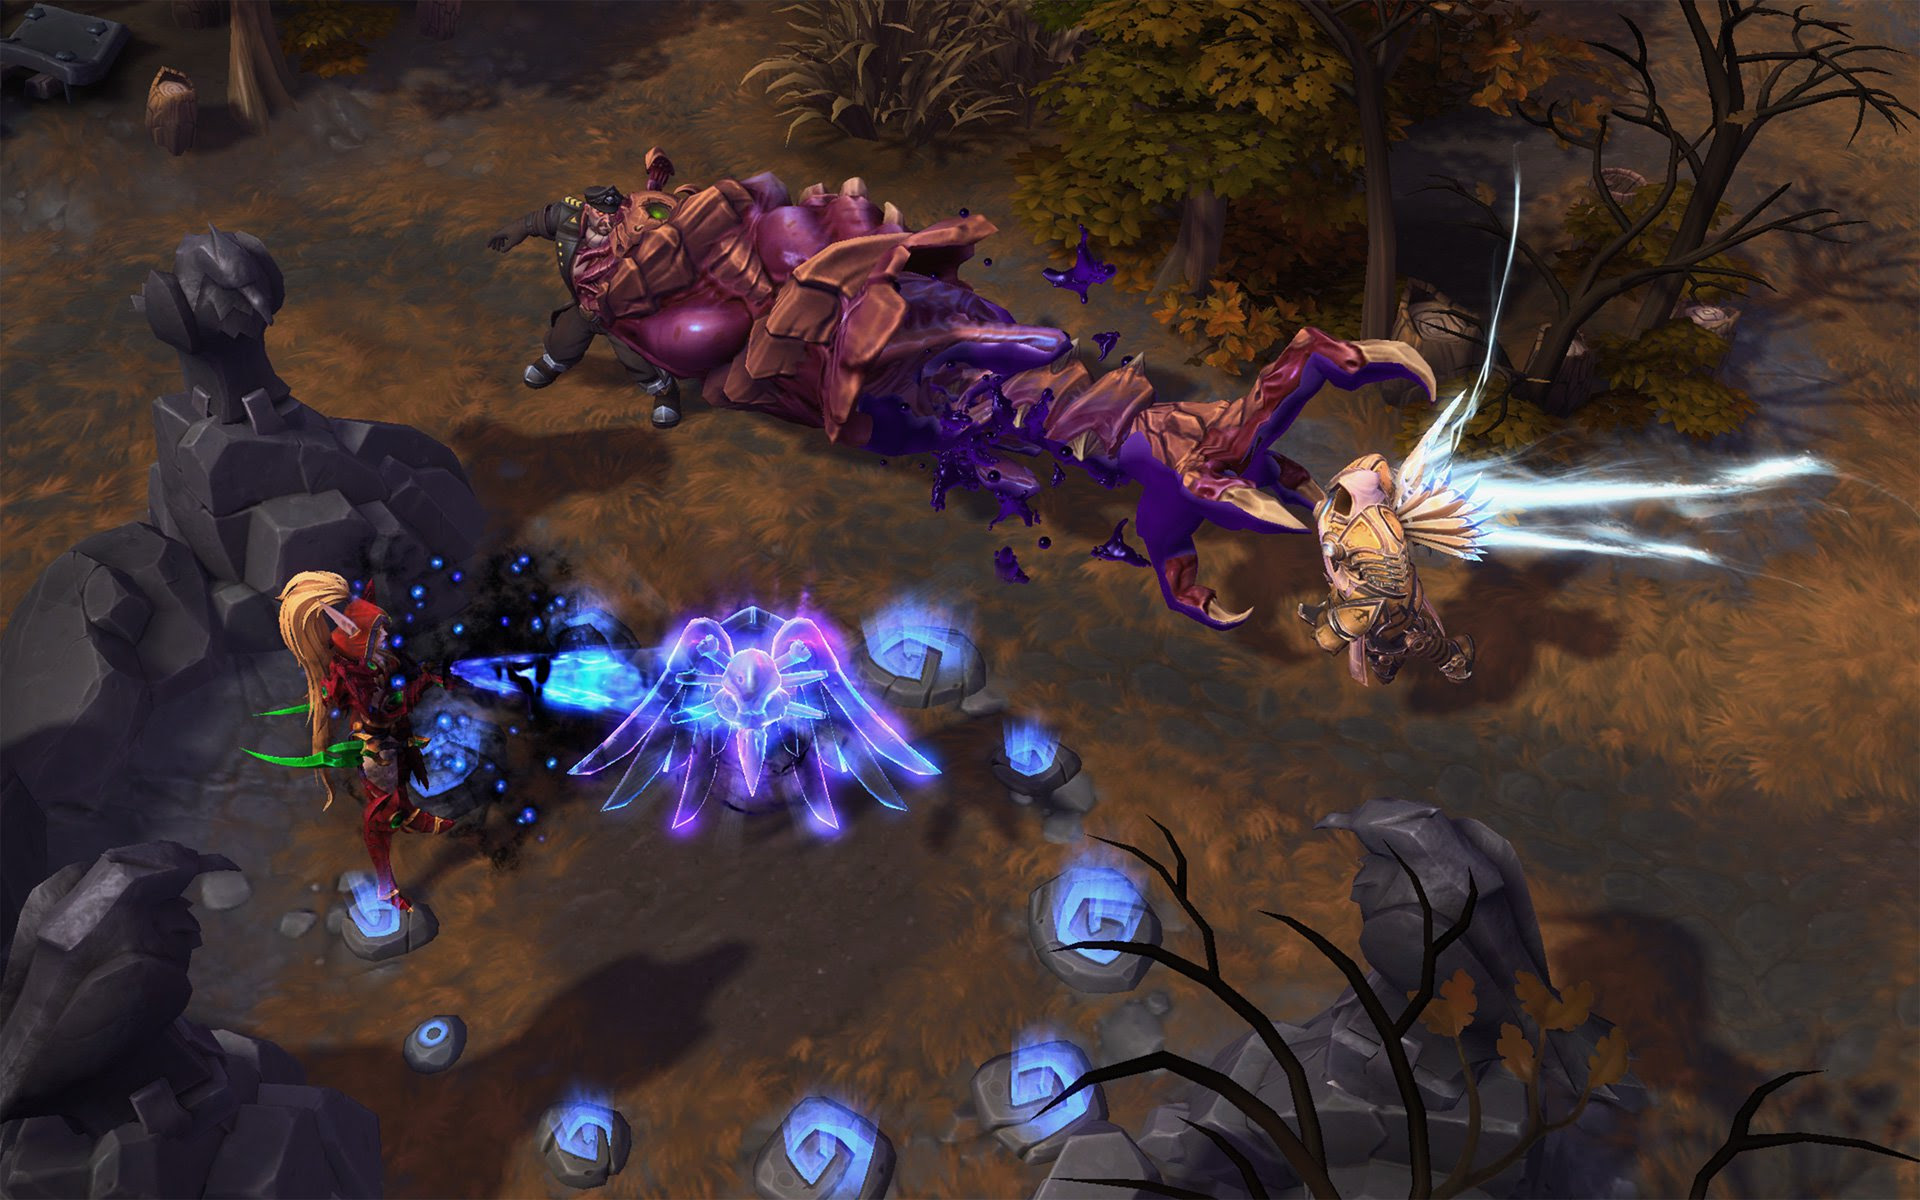 Stukov isn't on my list of wanted characters, but his outing in Heroes of the Storm is interesting screenshot